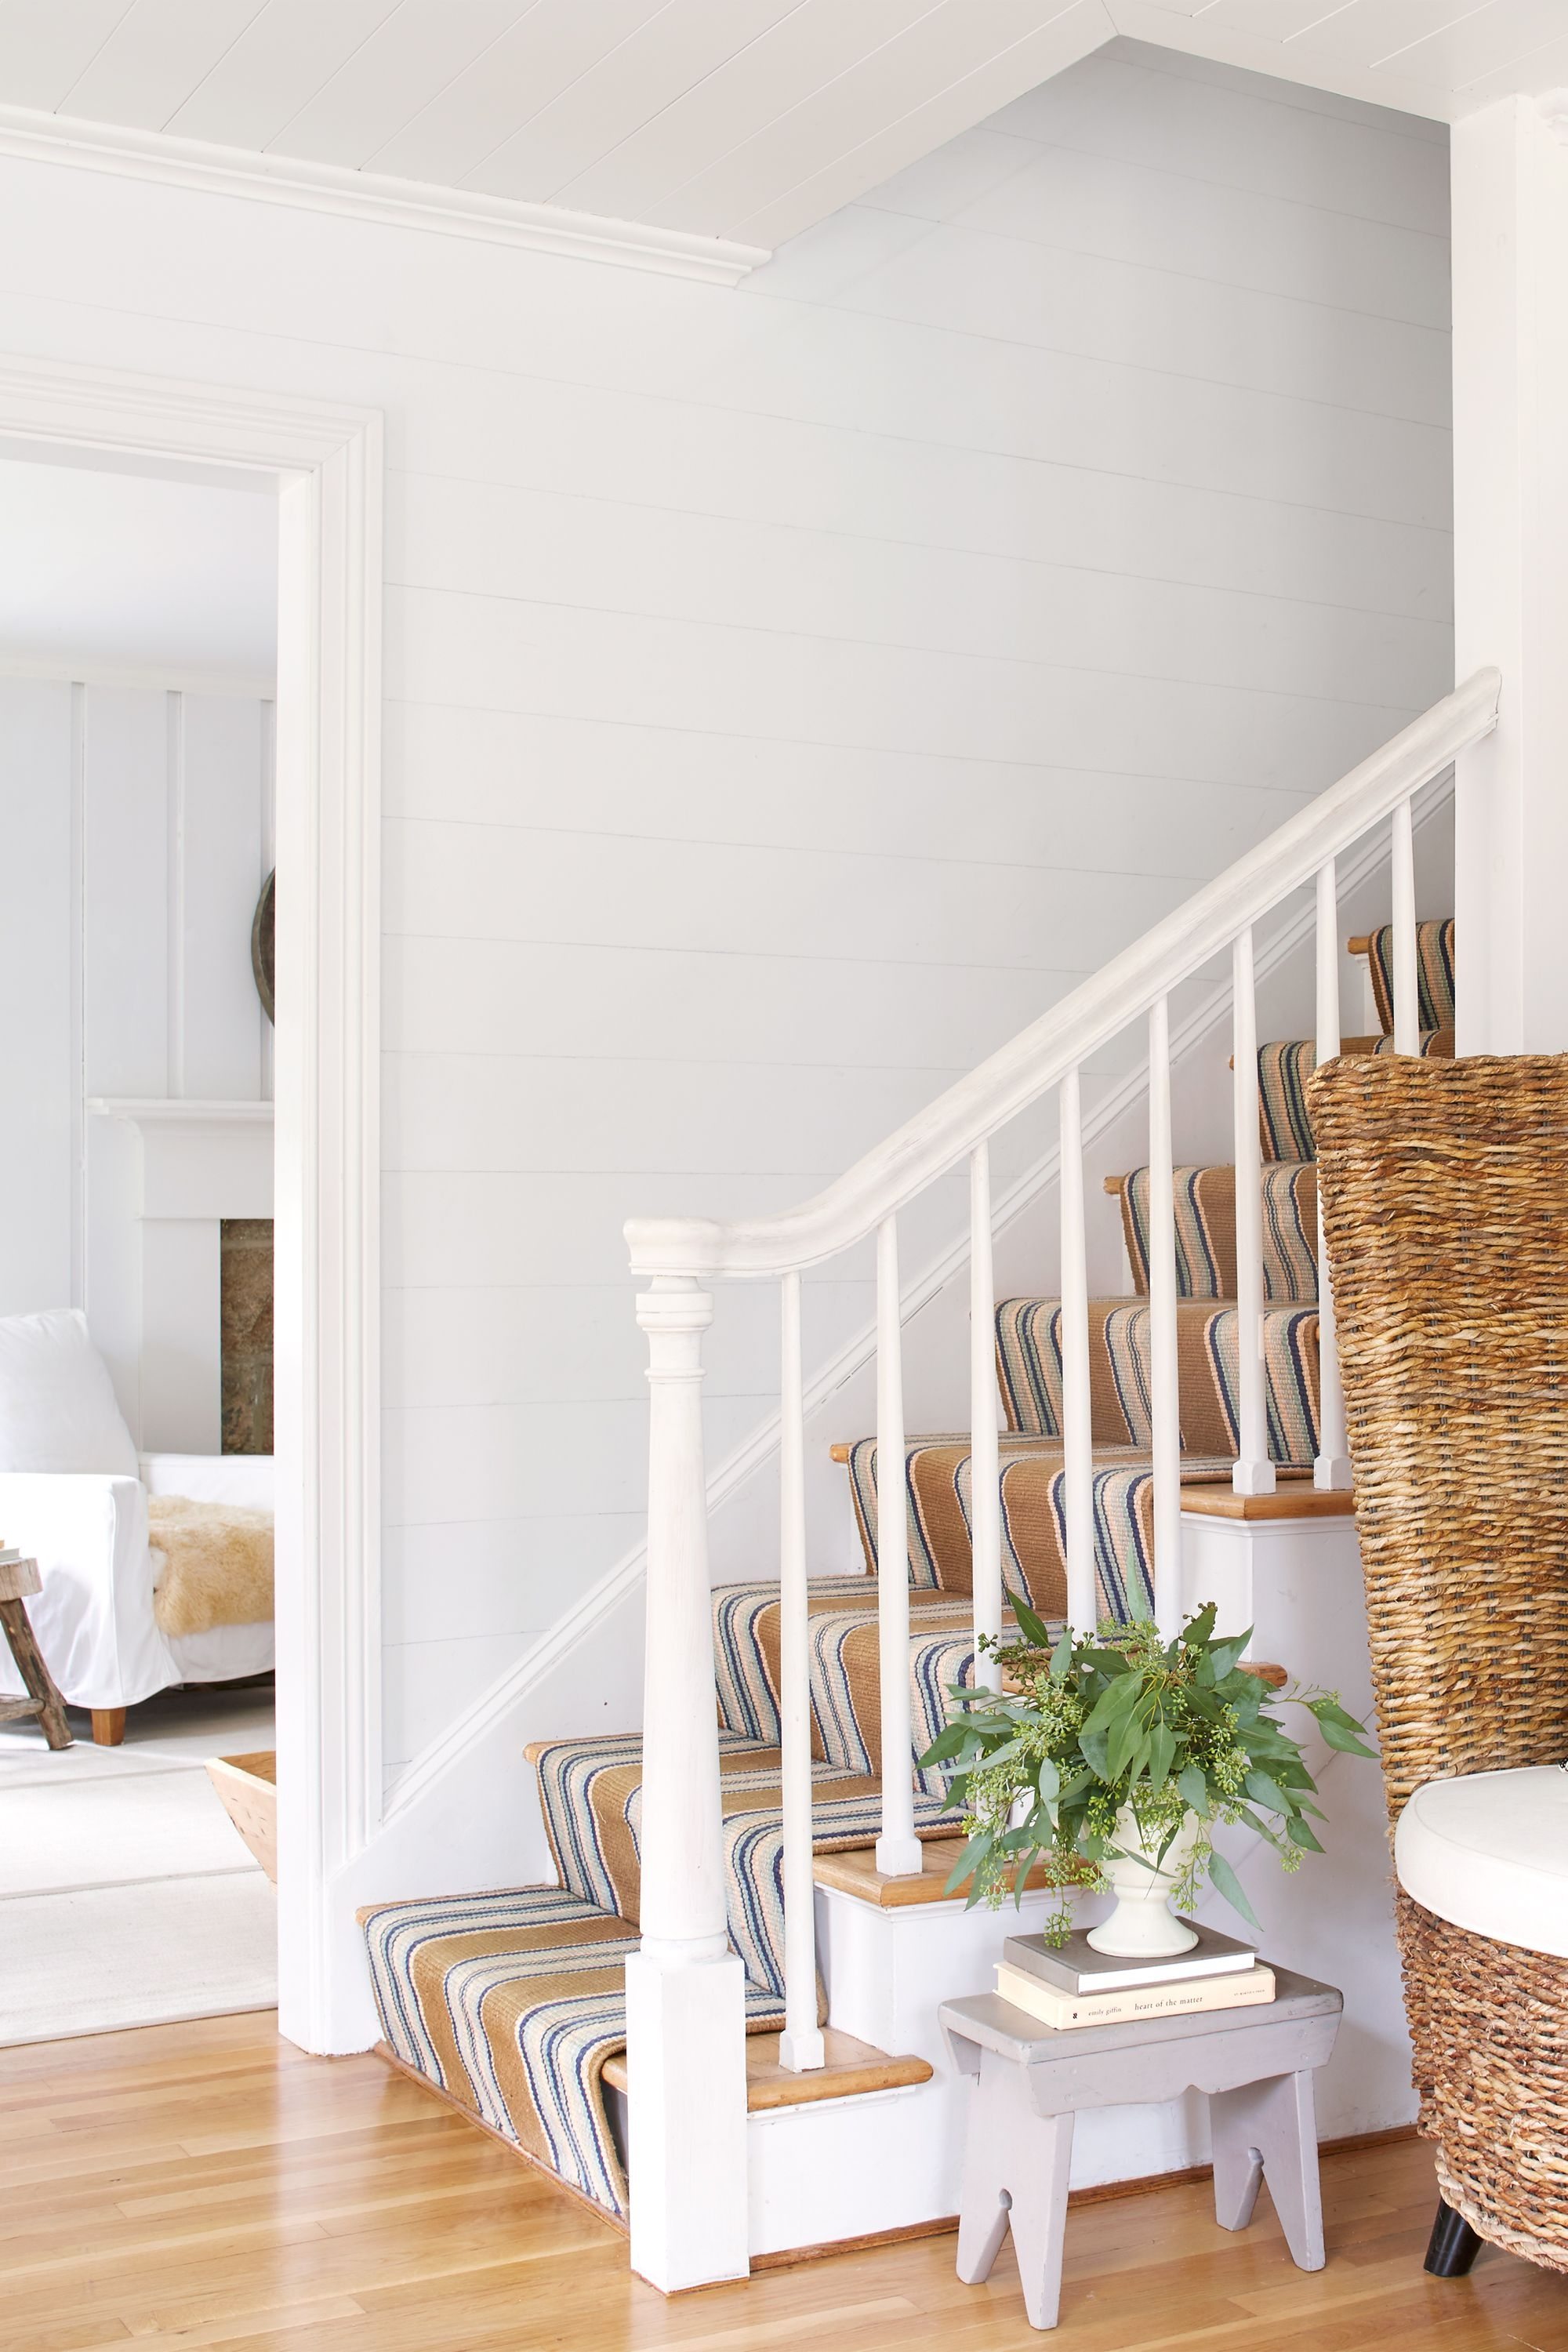 55 Best Staircase Ideas Top Ways To Decorate A Stairway | Front Stair House Design | Unique | Simple | Veranda Stair | Low Cost 2 Bhk House | Front Jina